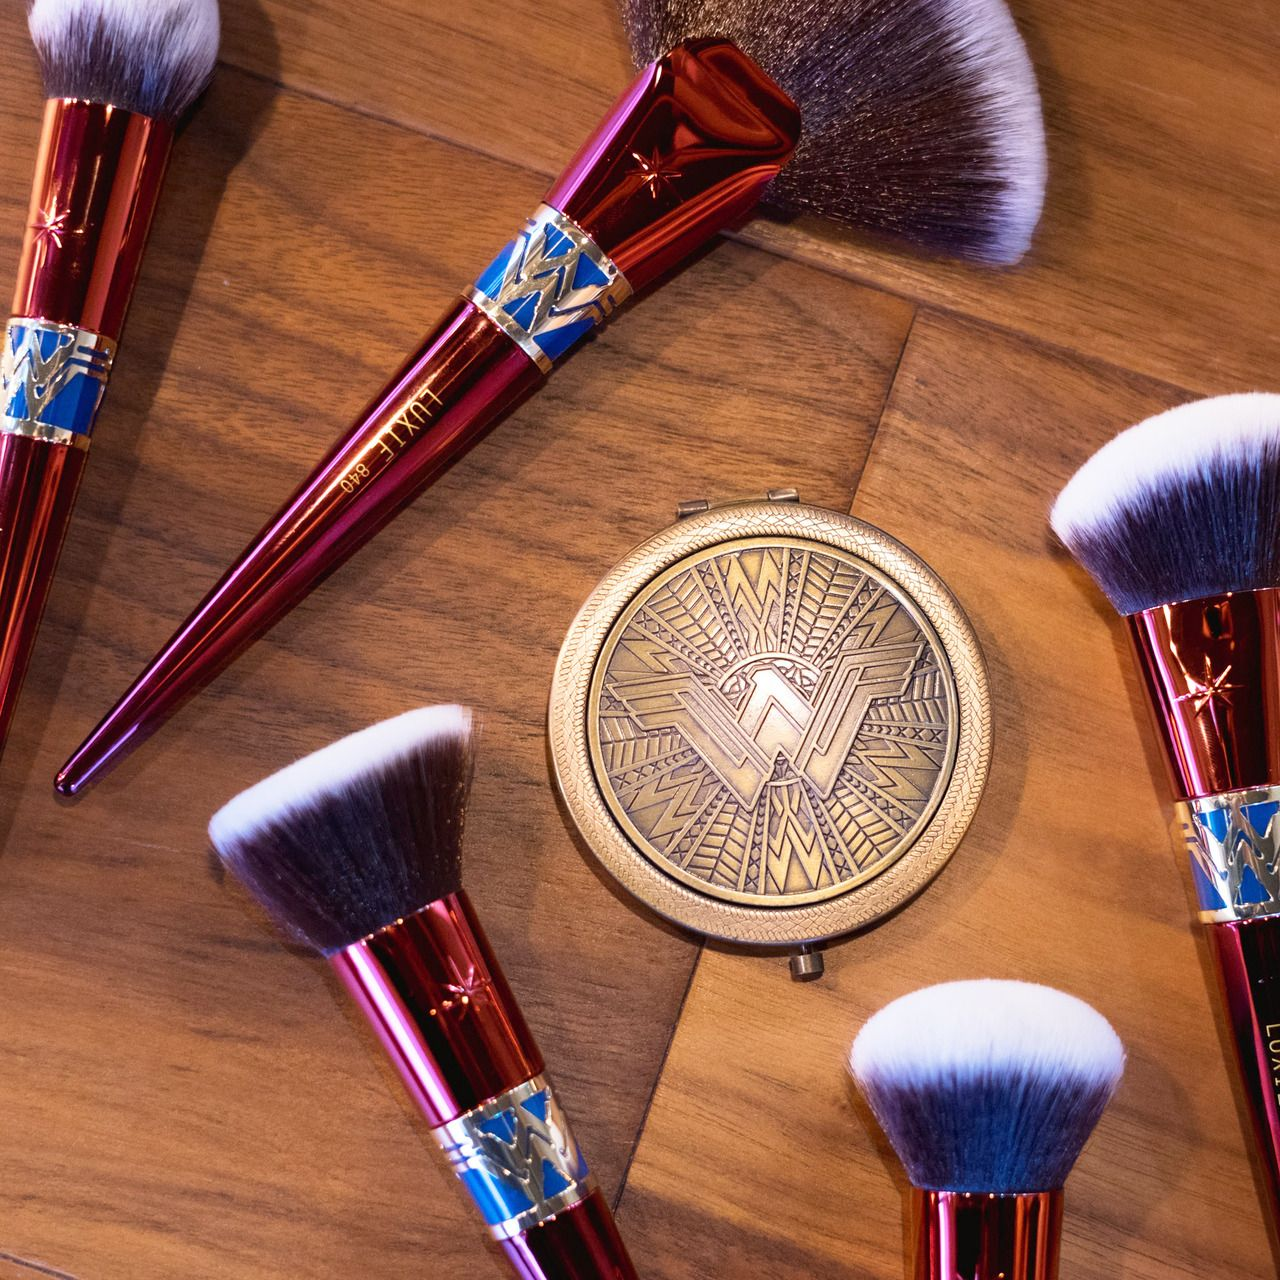 Officially licensed Wonder Woman makeup brushes with